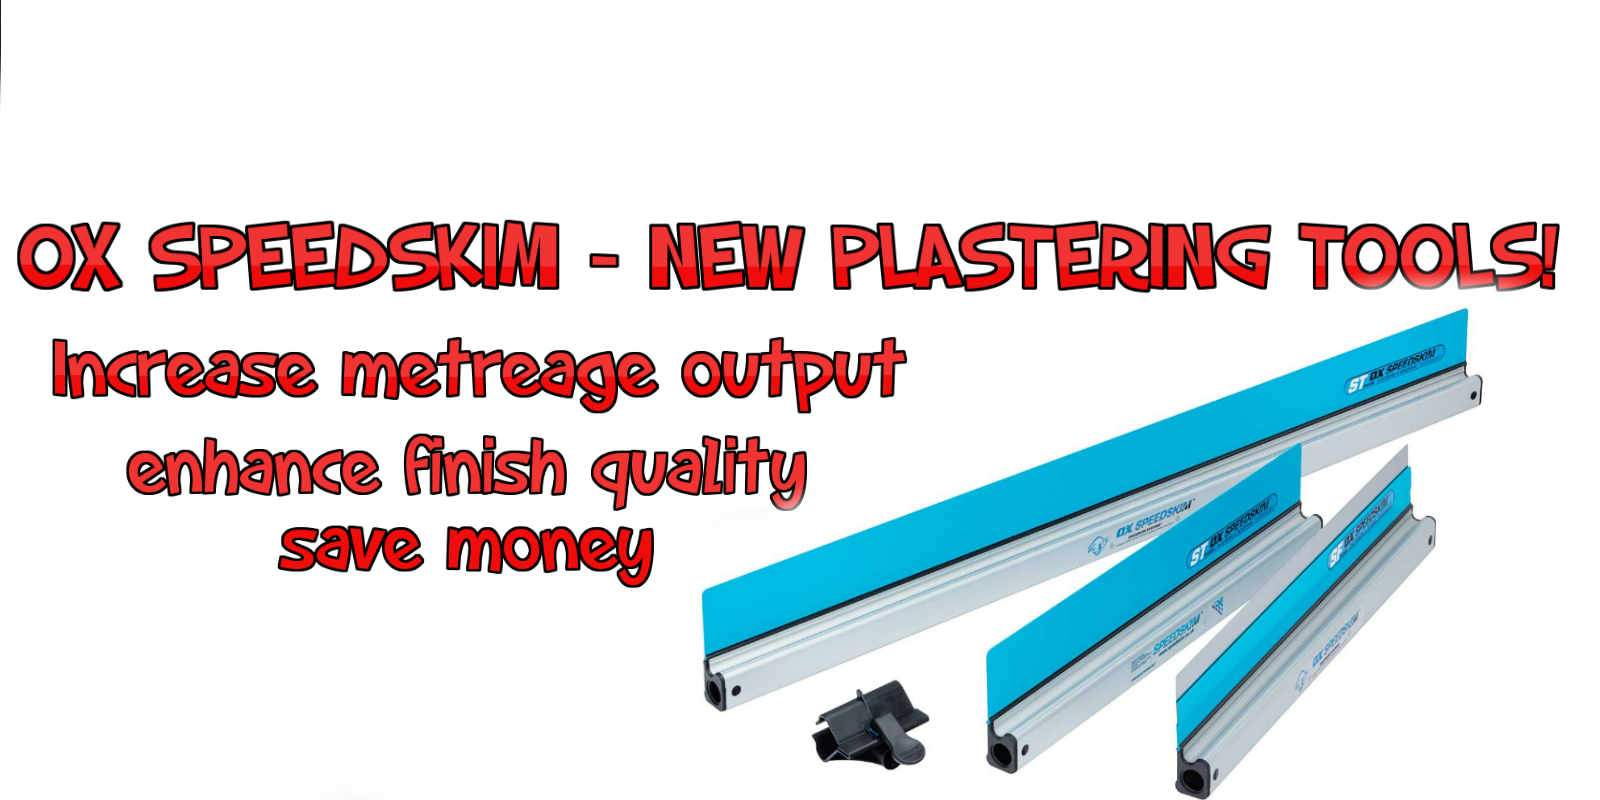 New OX Speedskim Plastering Tools